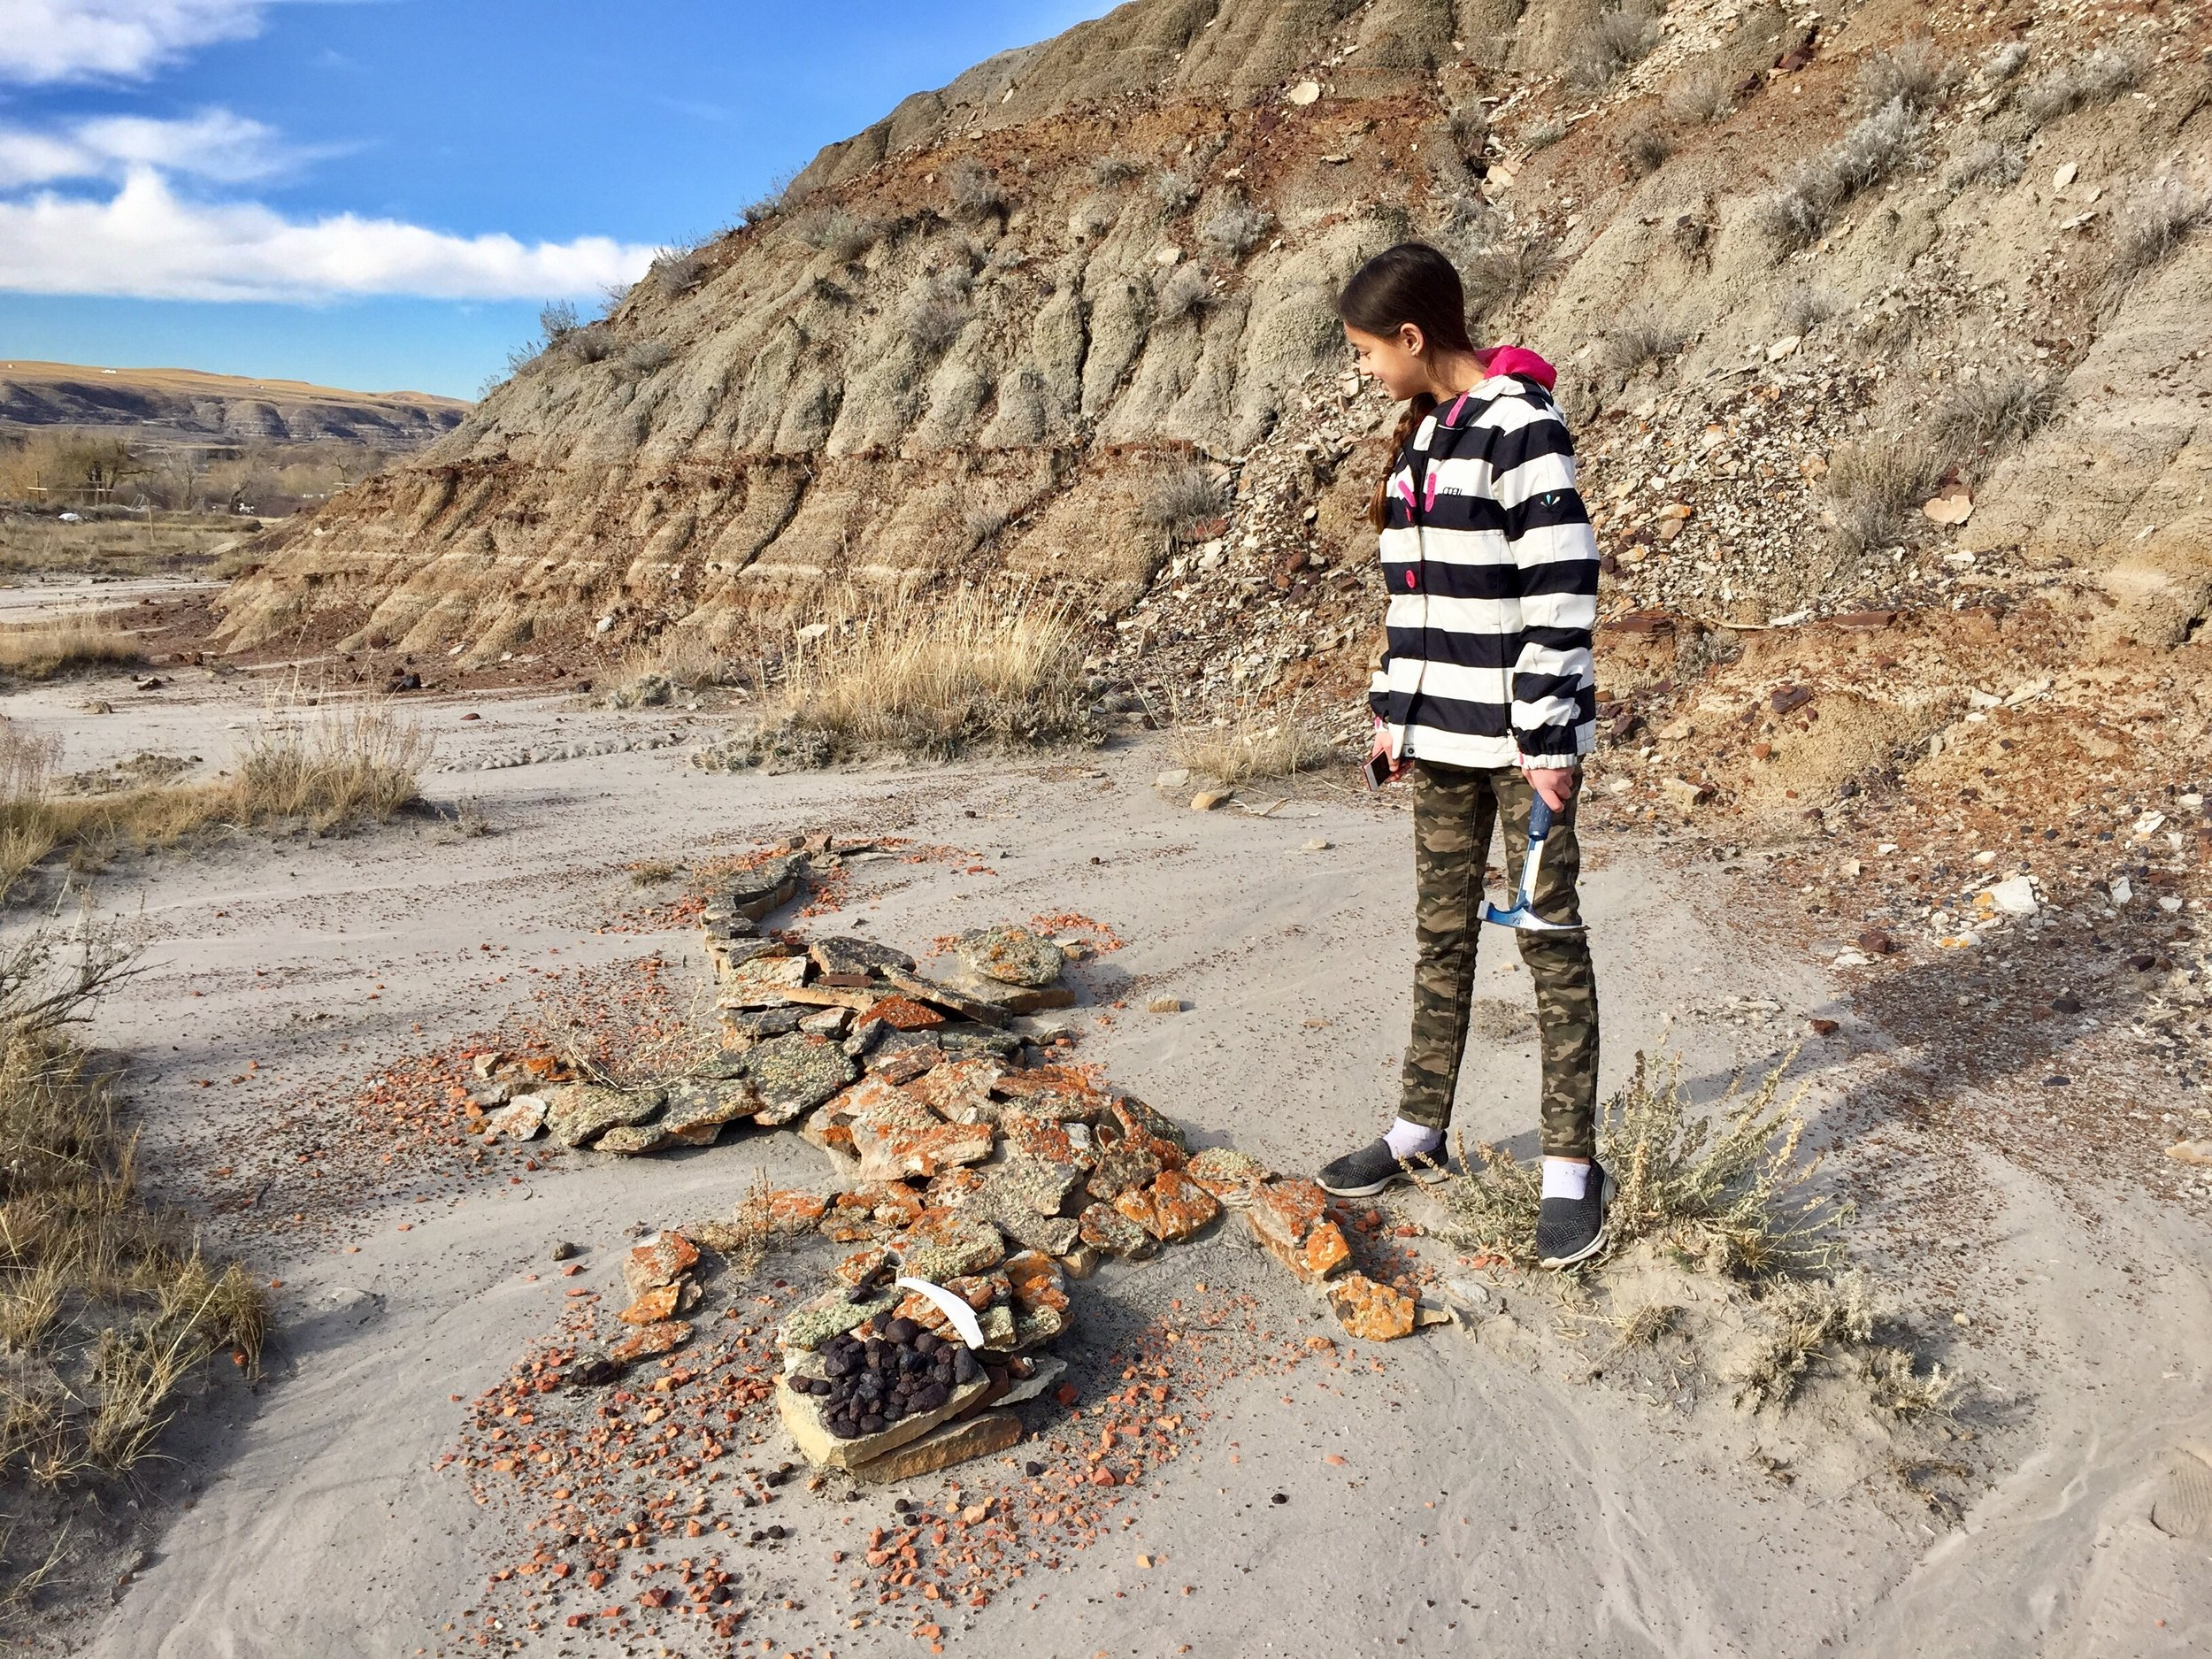 7-bridgit-checking-out-land-at-just-outside-drumheller_30083771223_o.jpg